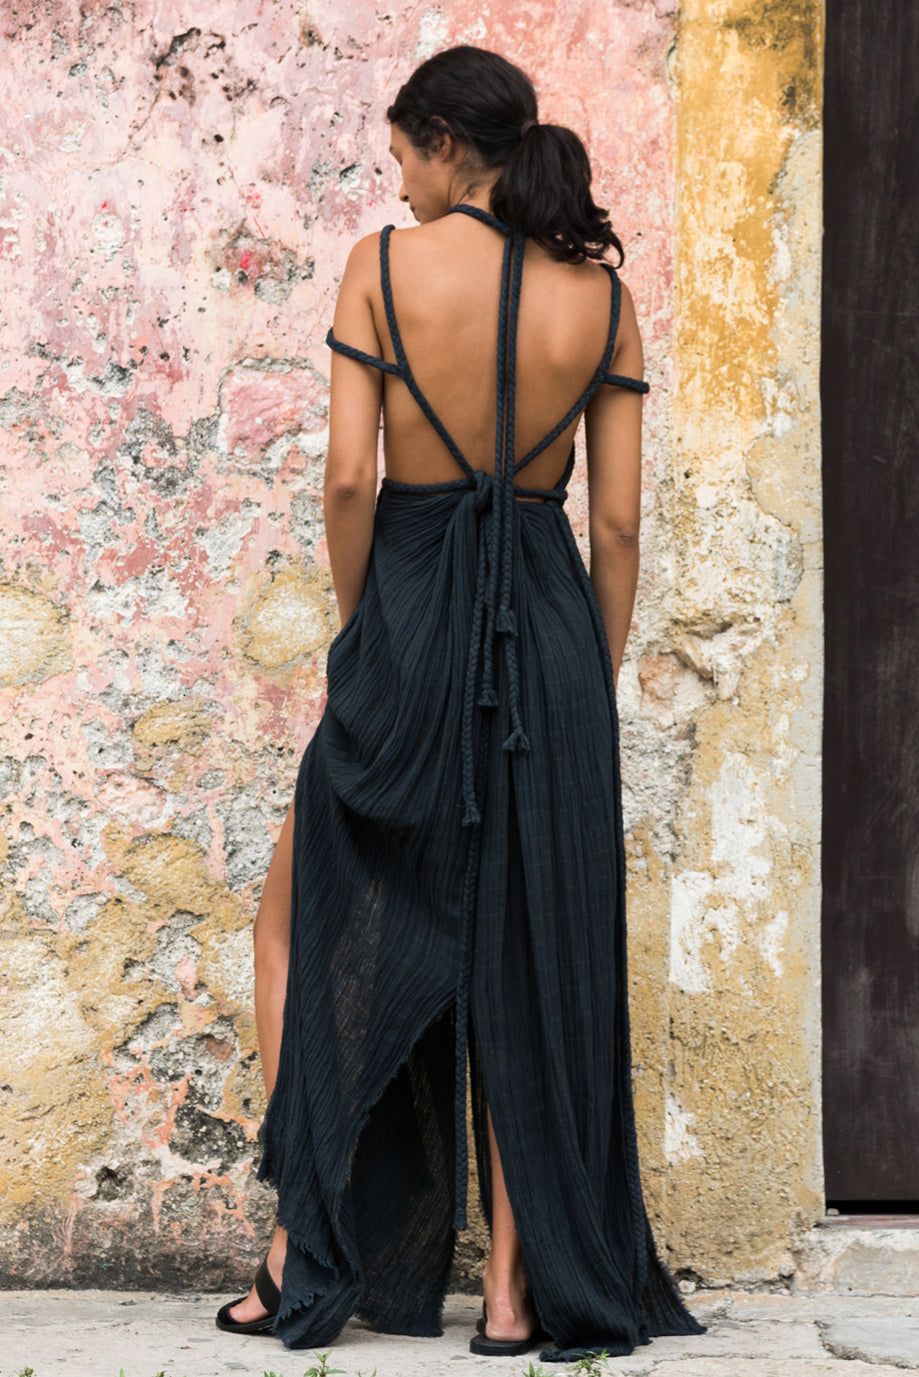 Kasia Kulenty beach dress gown tulum, image